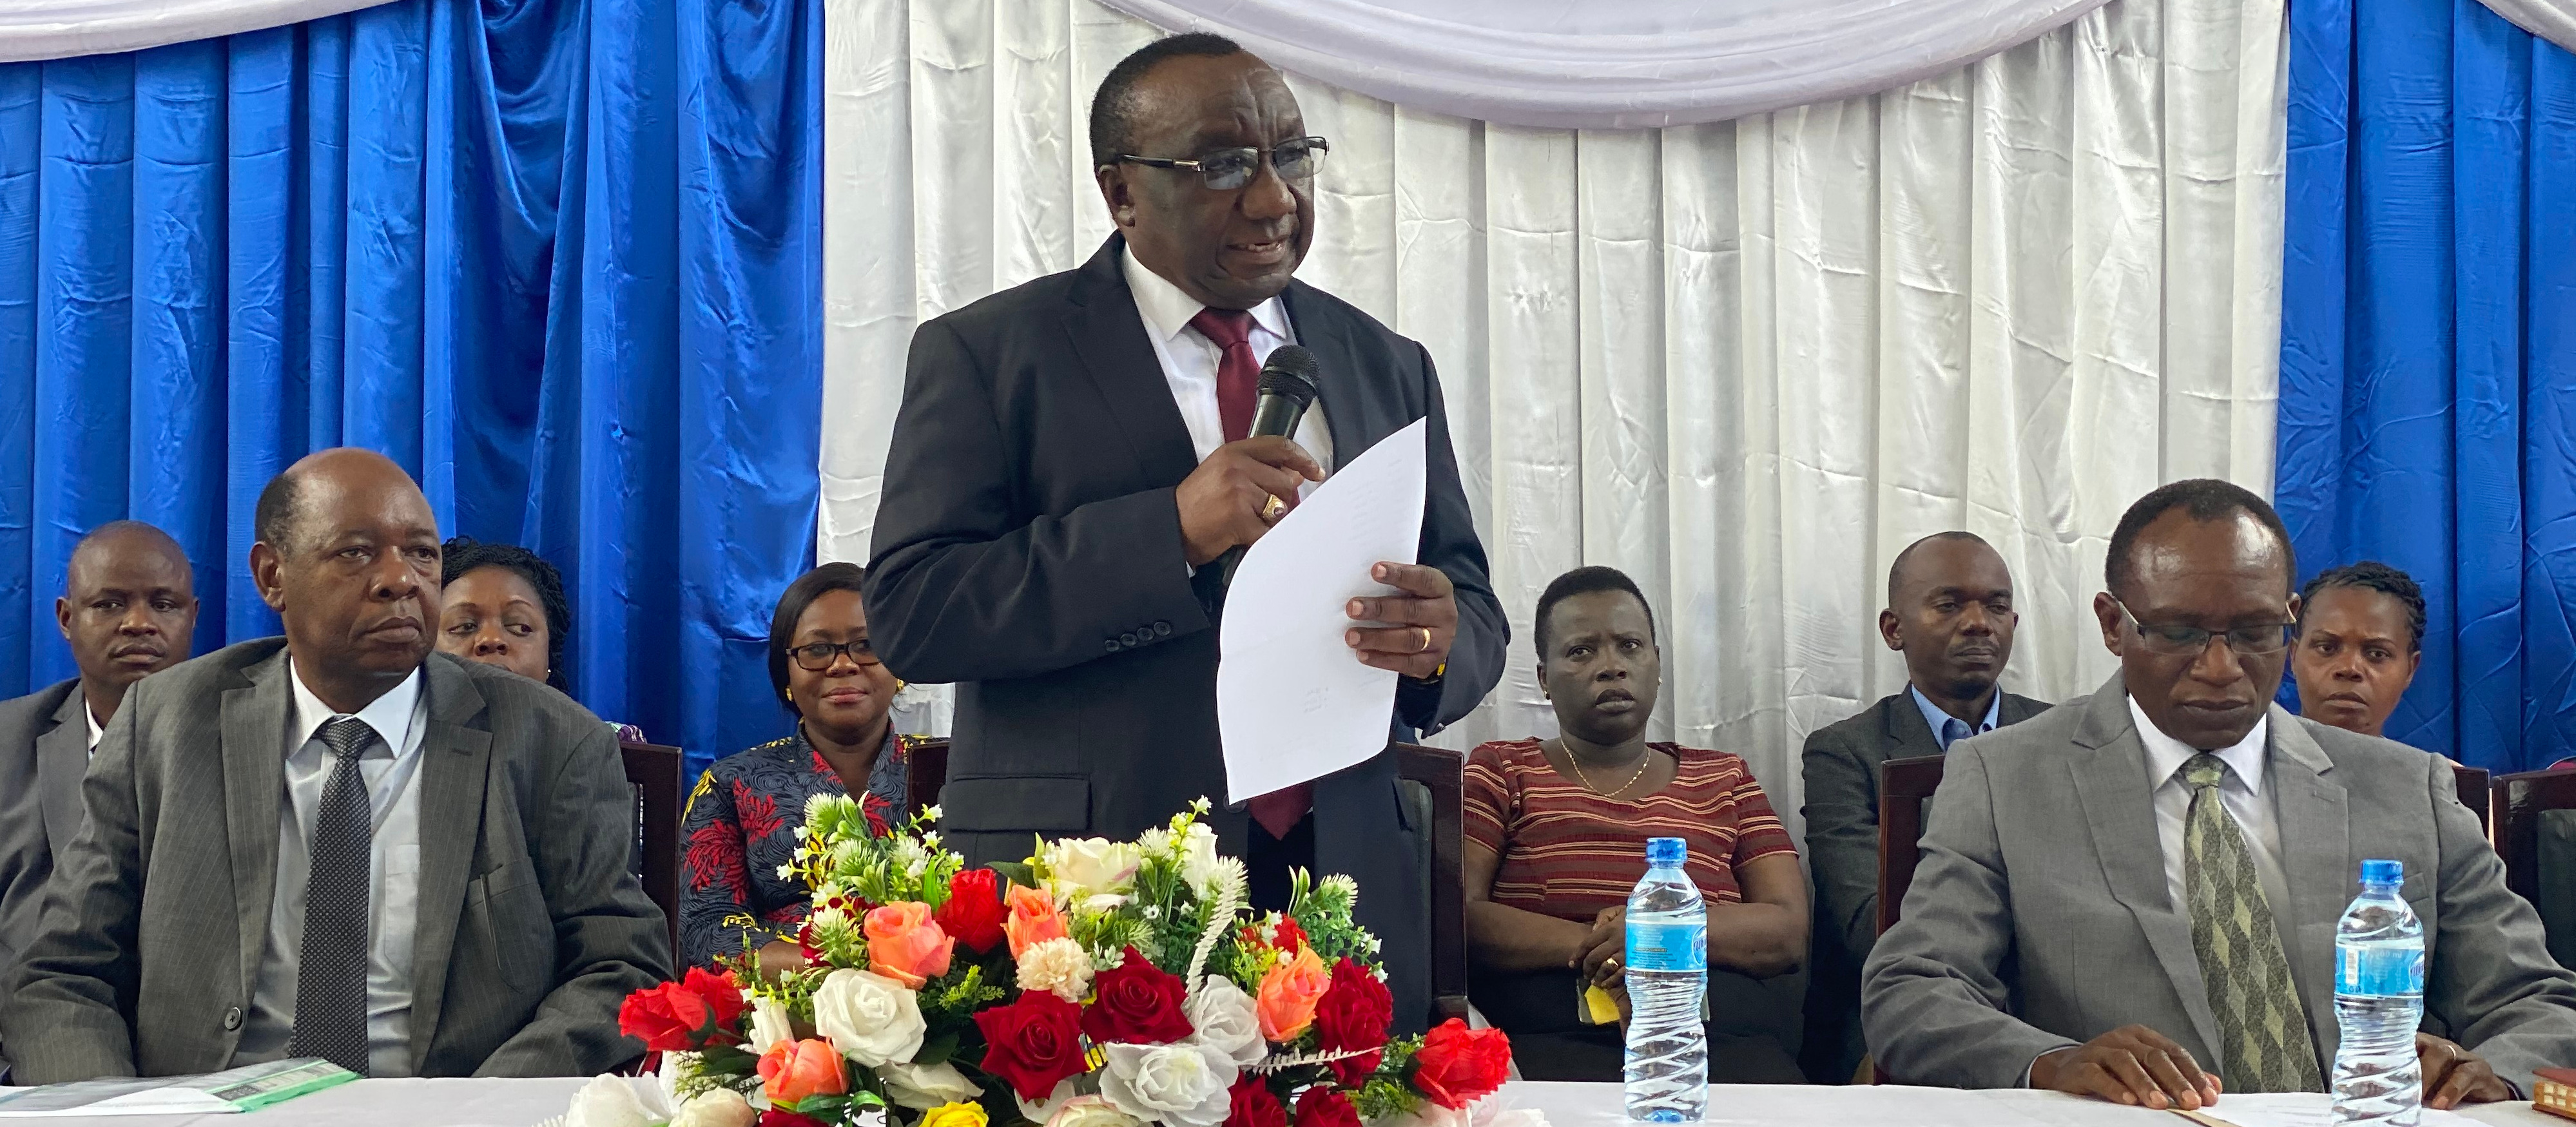 The Vice Chancellor Prof. Evaristo Liwa delivers a speech, during the orientation week, to first year students who were selected to join the University for the academic year 2020/2021.